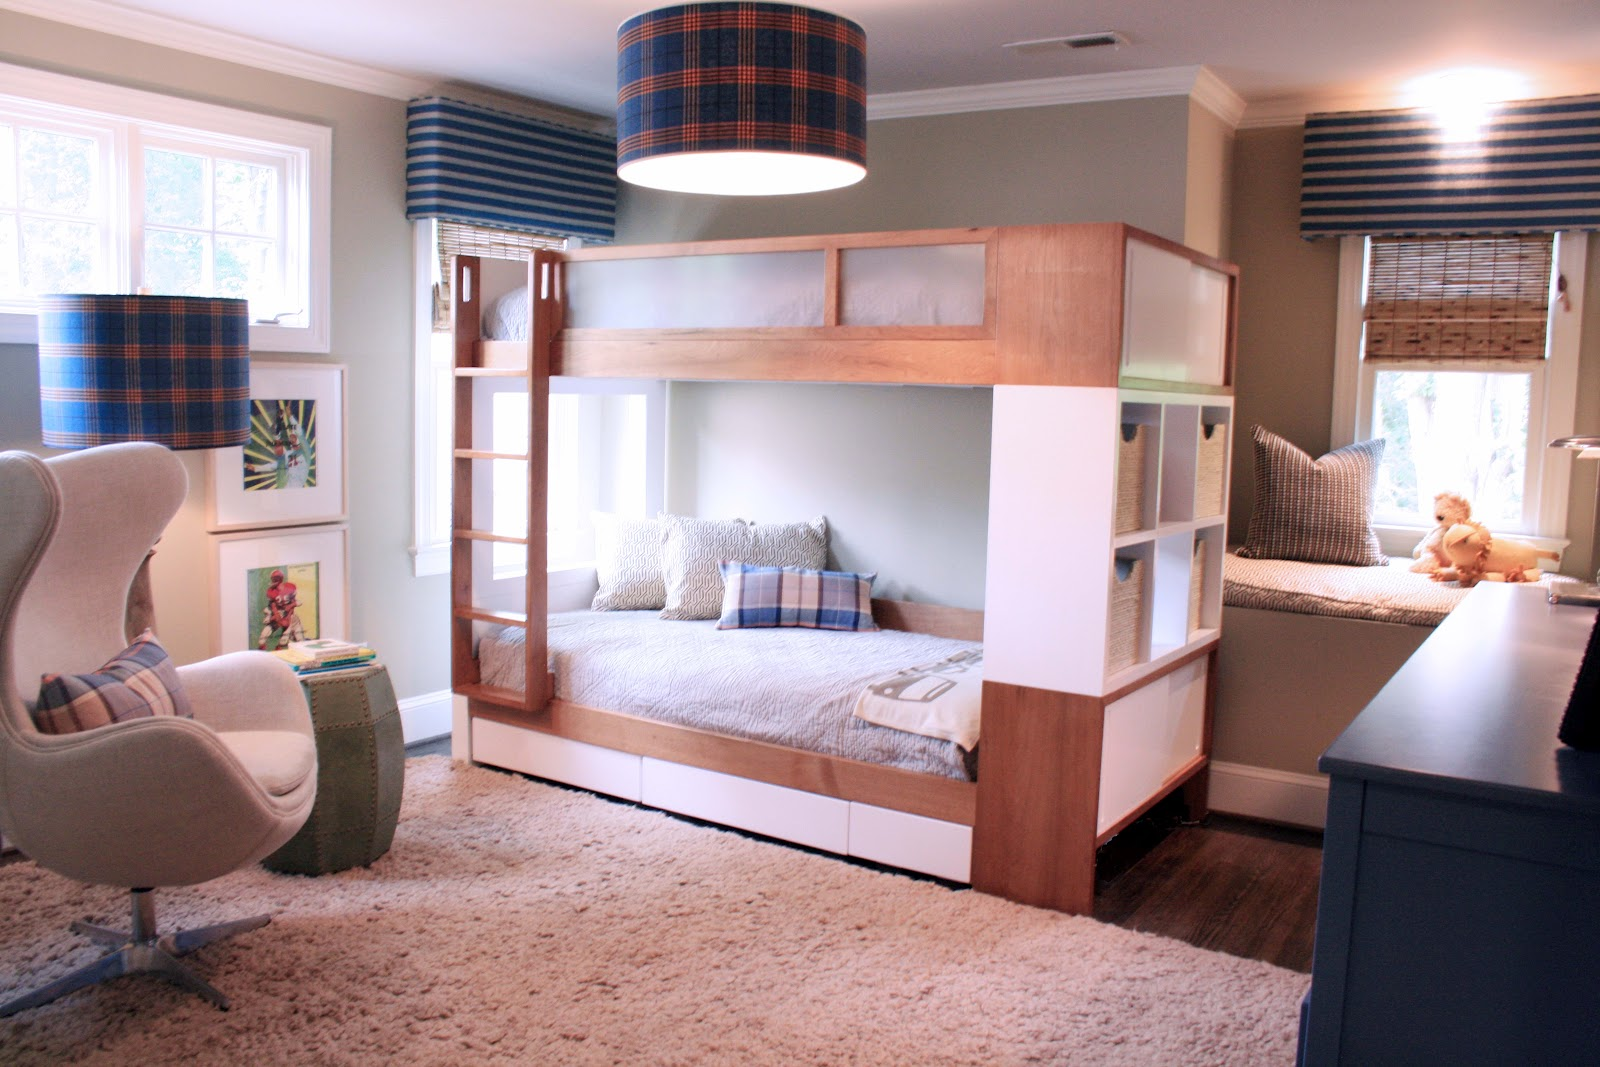 Super cool rooms for boys lucy co - Cool stuff for boys room ...